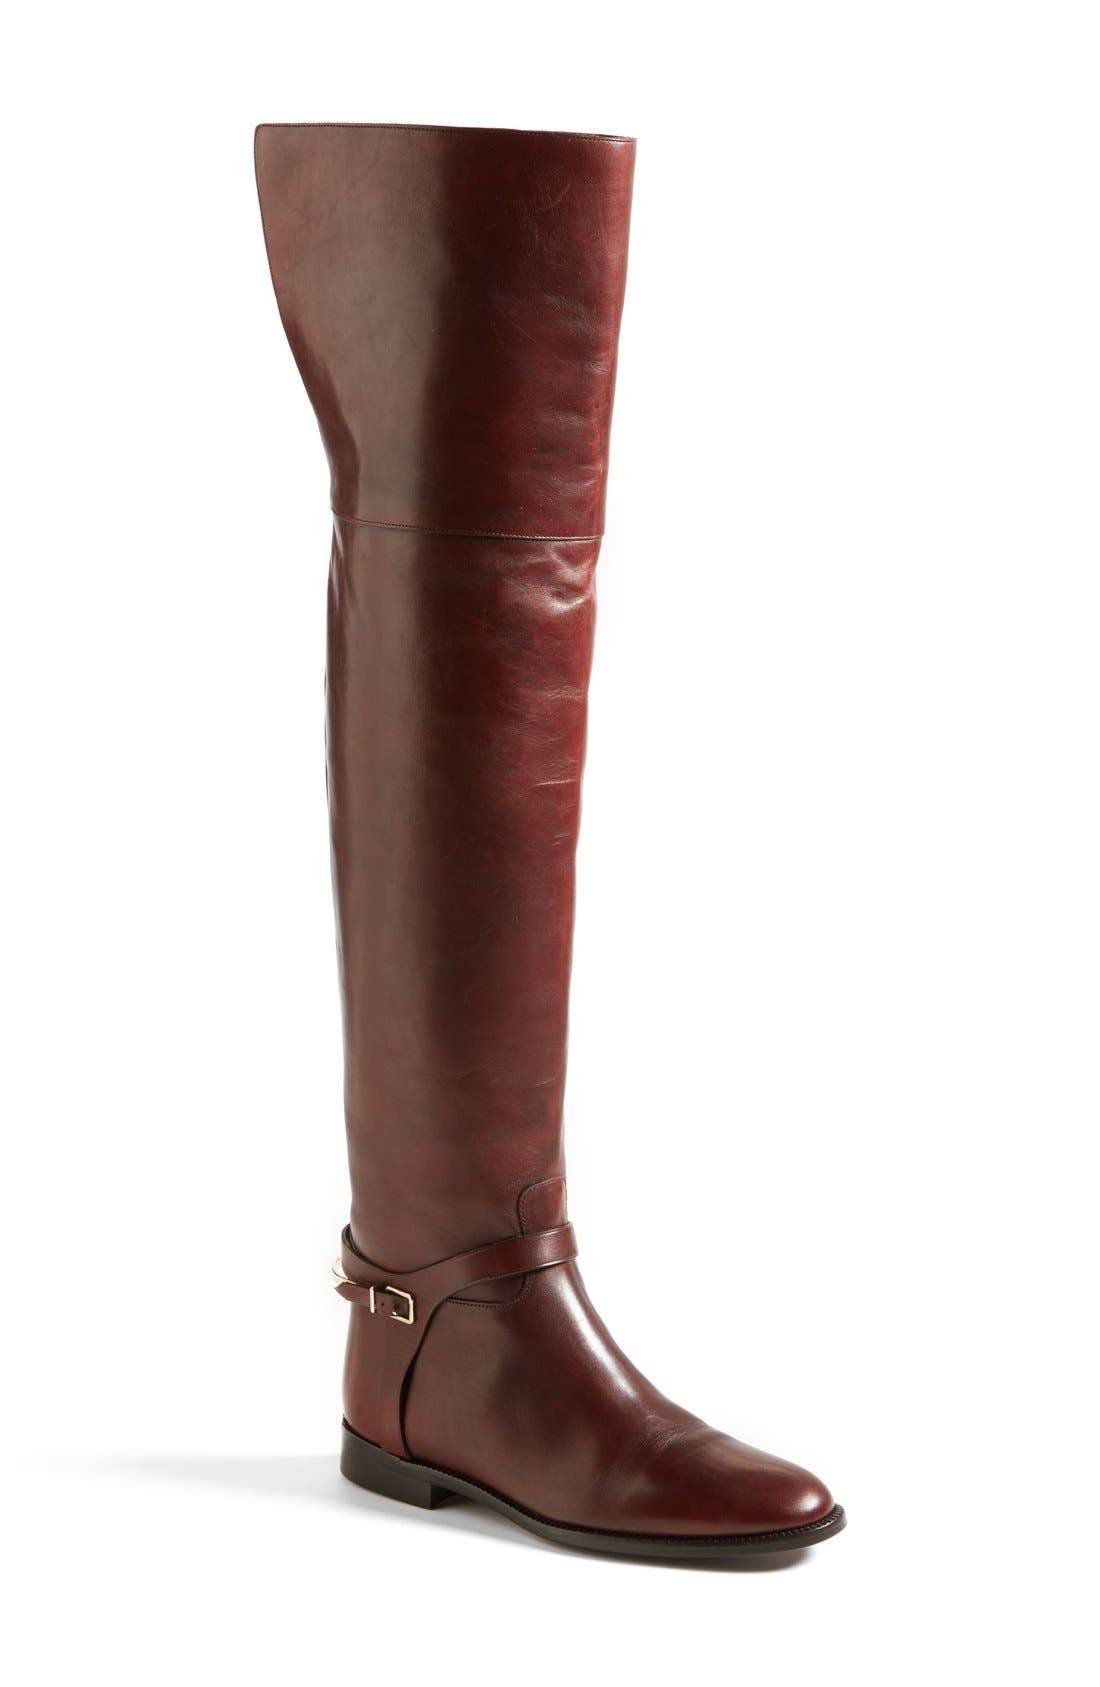 Alternate Image 1 Selected - Burberry 'Carmack' Over the Knee Boot (Women)